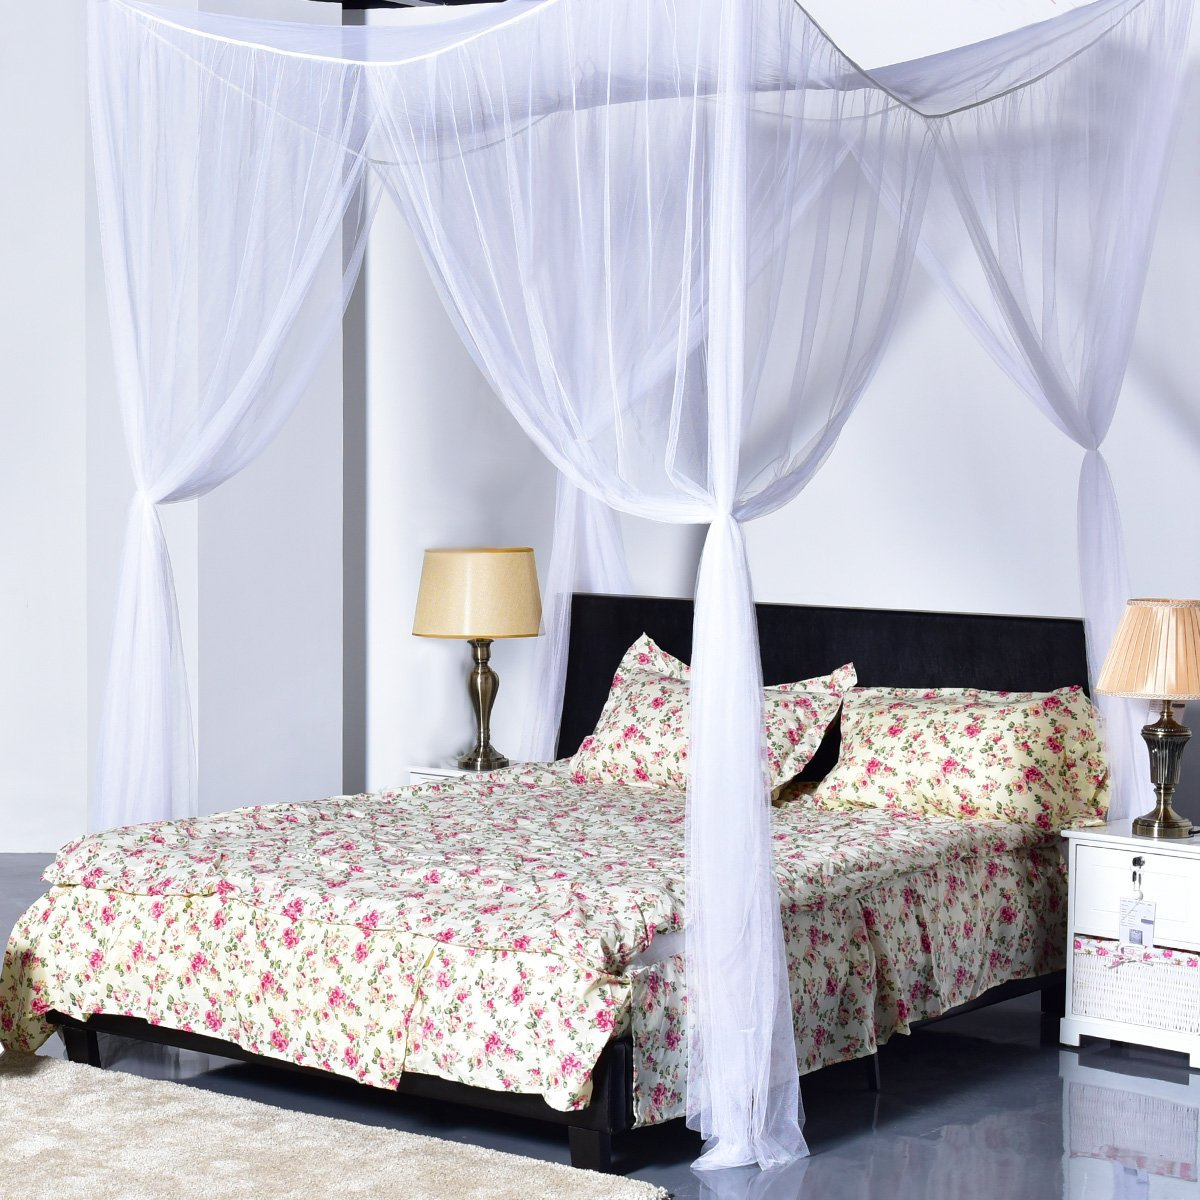 a5f5375926625 Goplus 4 Corner Post Bed Canopy Mosquito Net Full Queen King Size ...